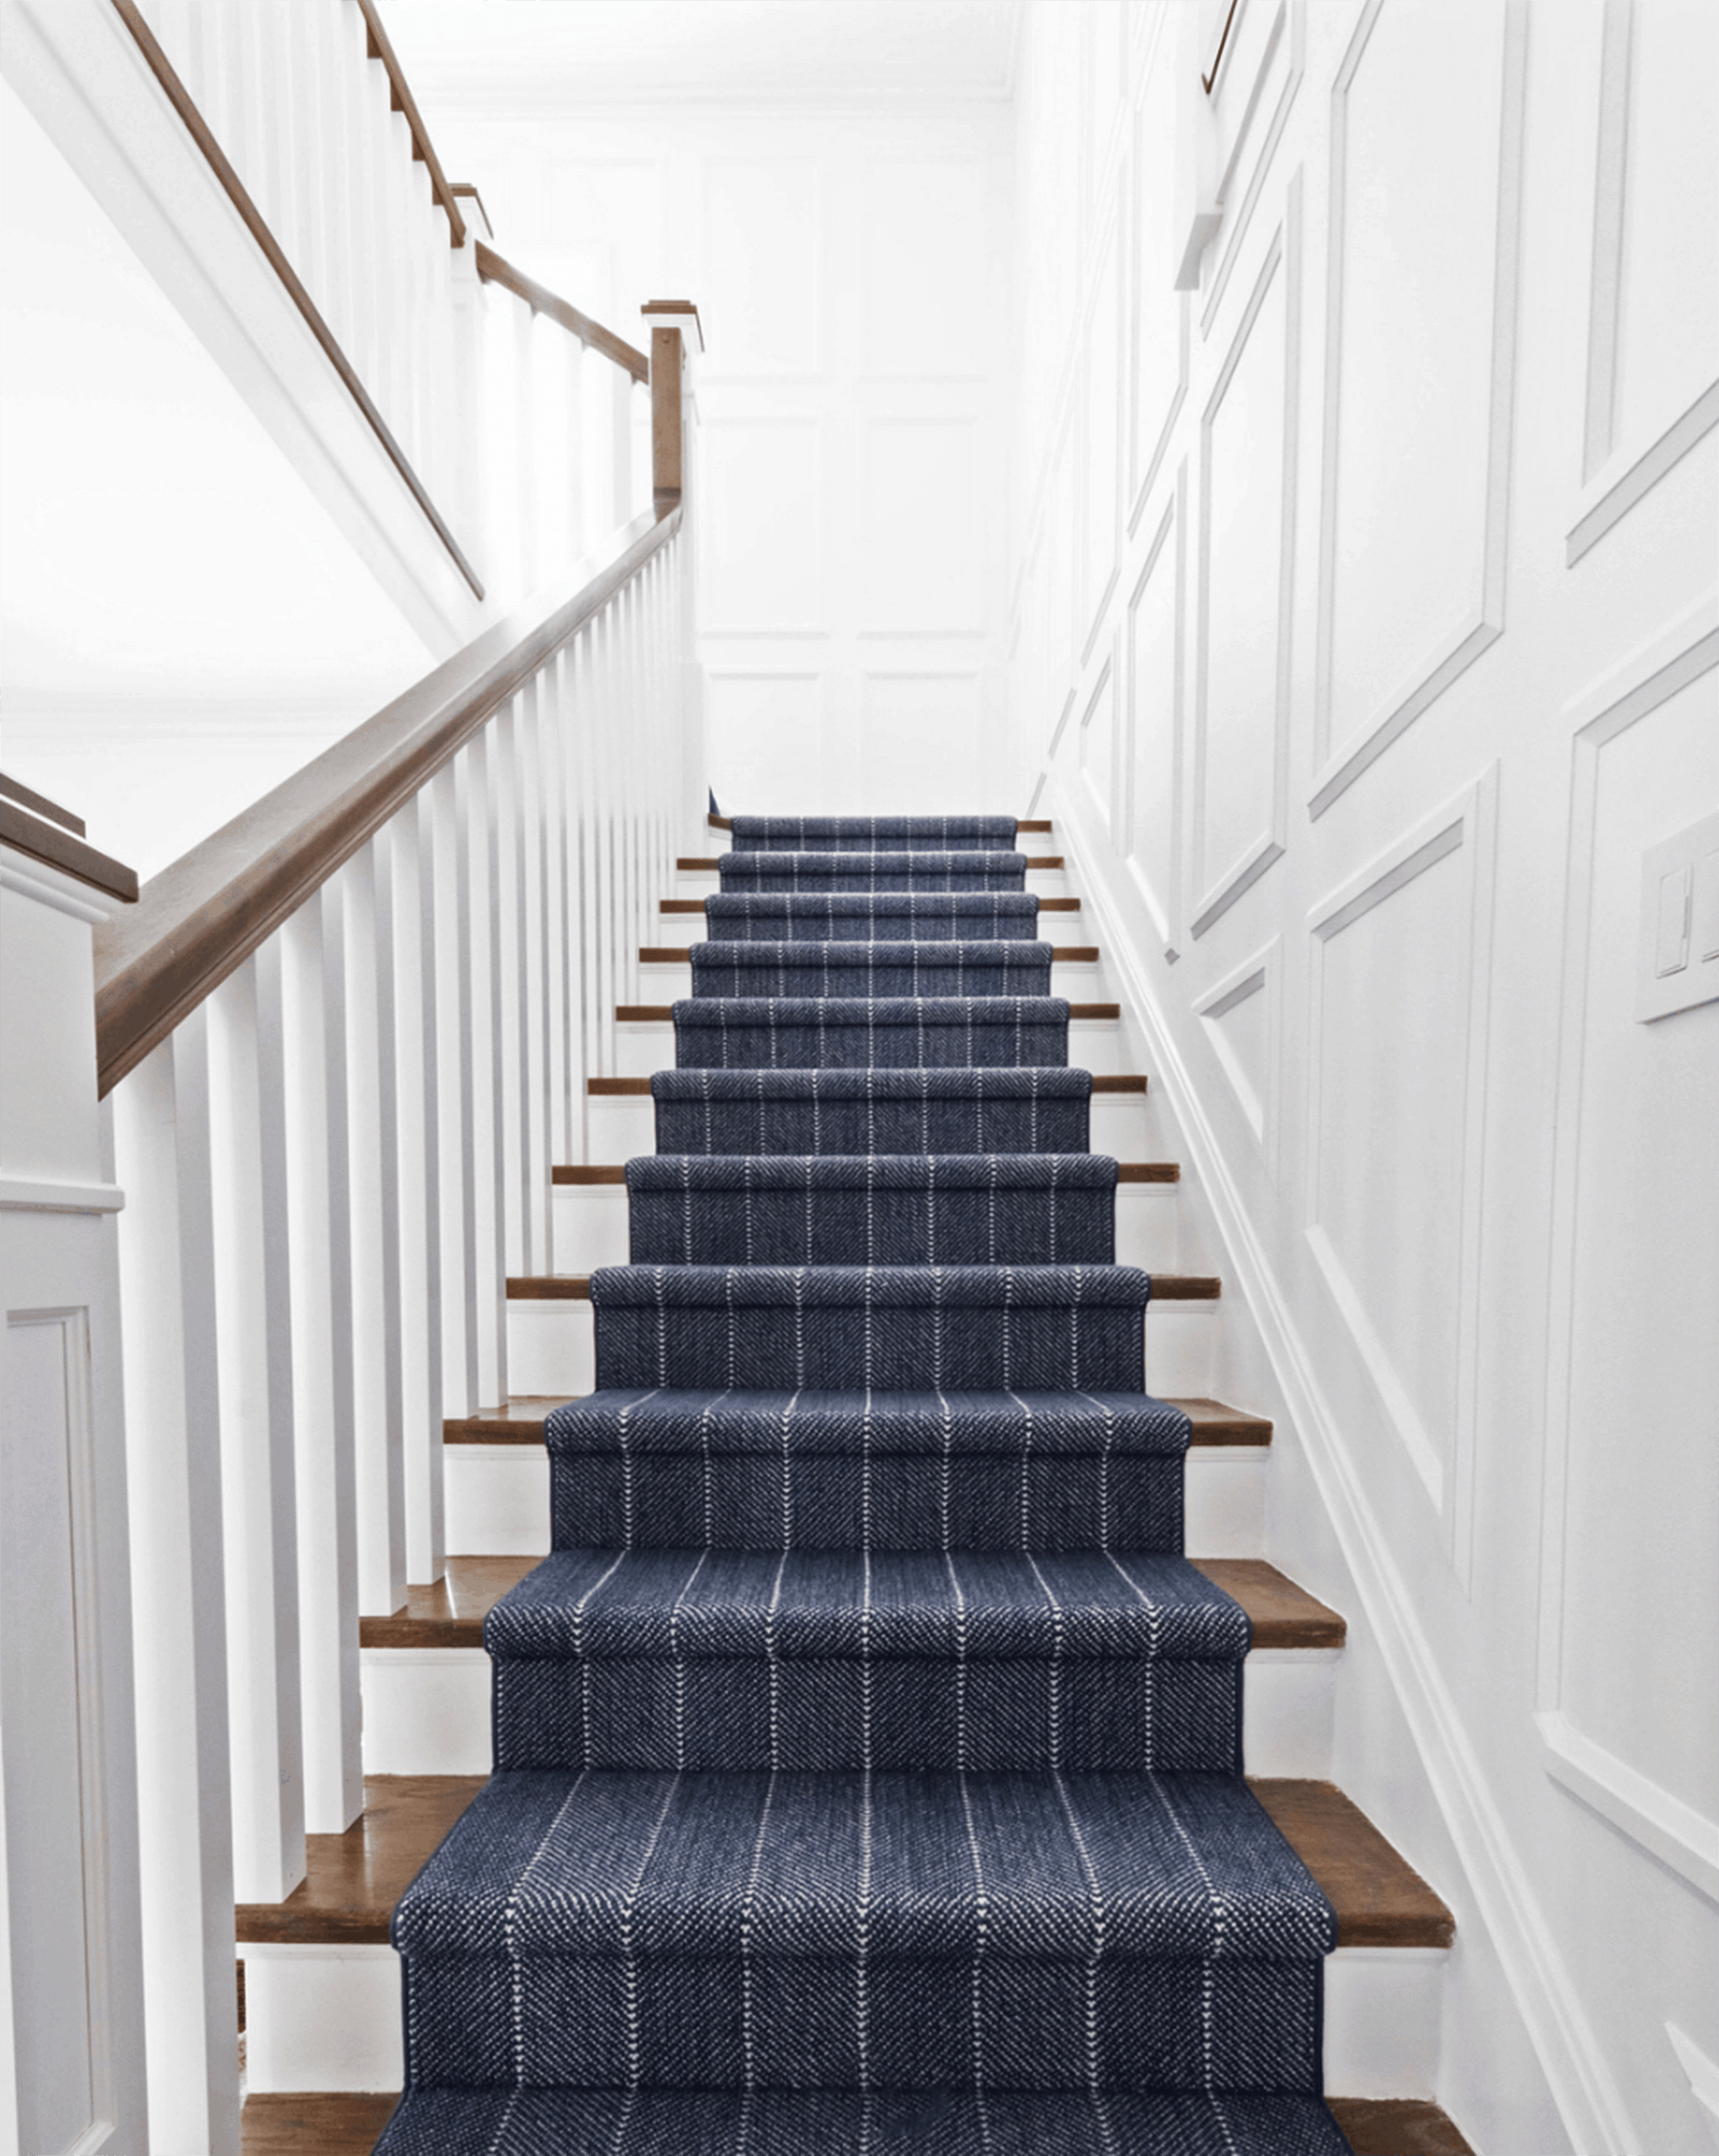 Should I Add A Carpet Or Rug Runner To My Mountain House Staircase | Navy Carpet On Stairs | Wooden | Loop Pile | Wall To Wall Carpet | Dark Blue | Geometric